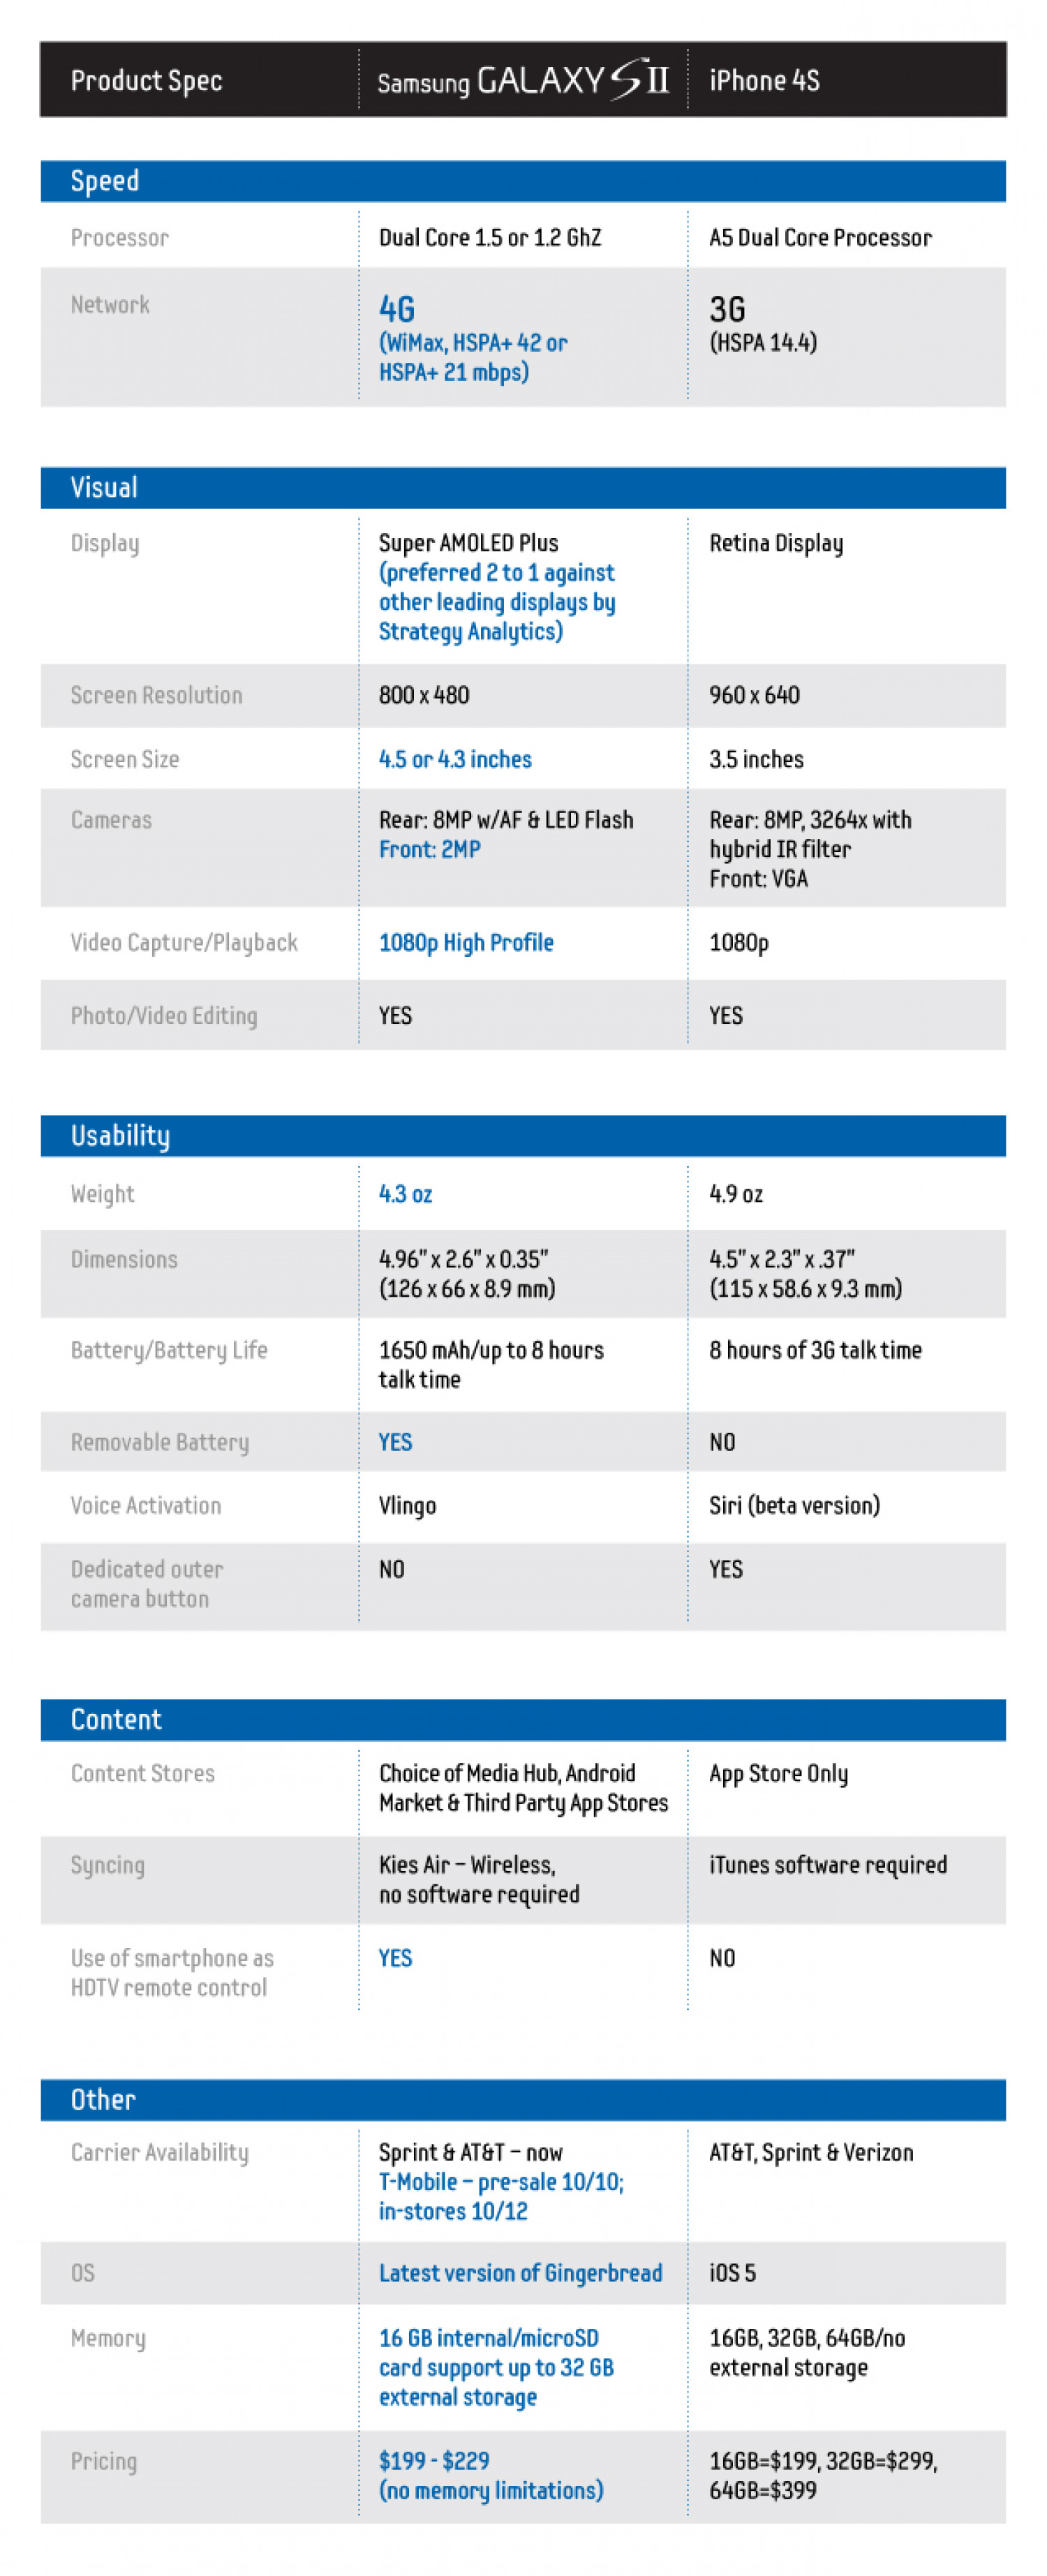 Samsung Galaxy SII vs. iPhone Spec Sheet | Publish or ... Infographic